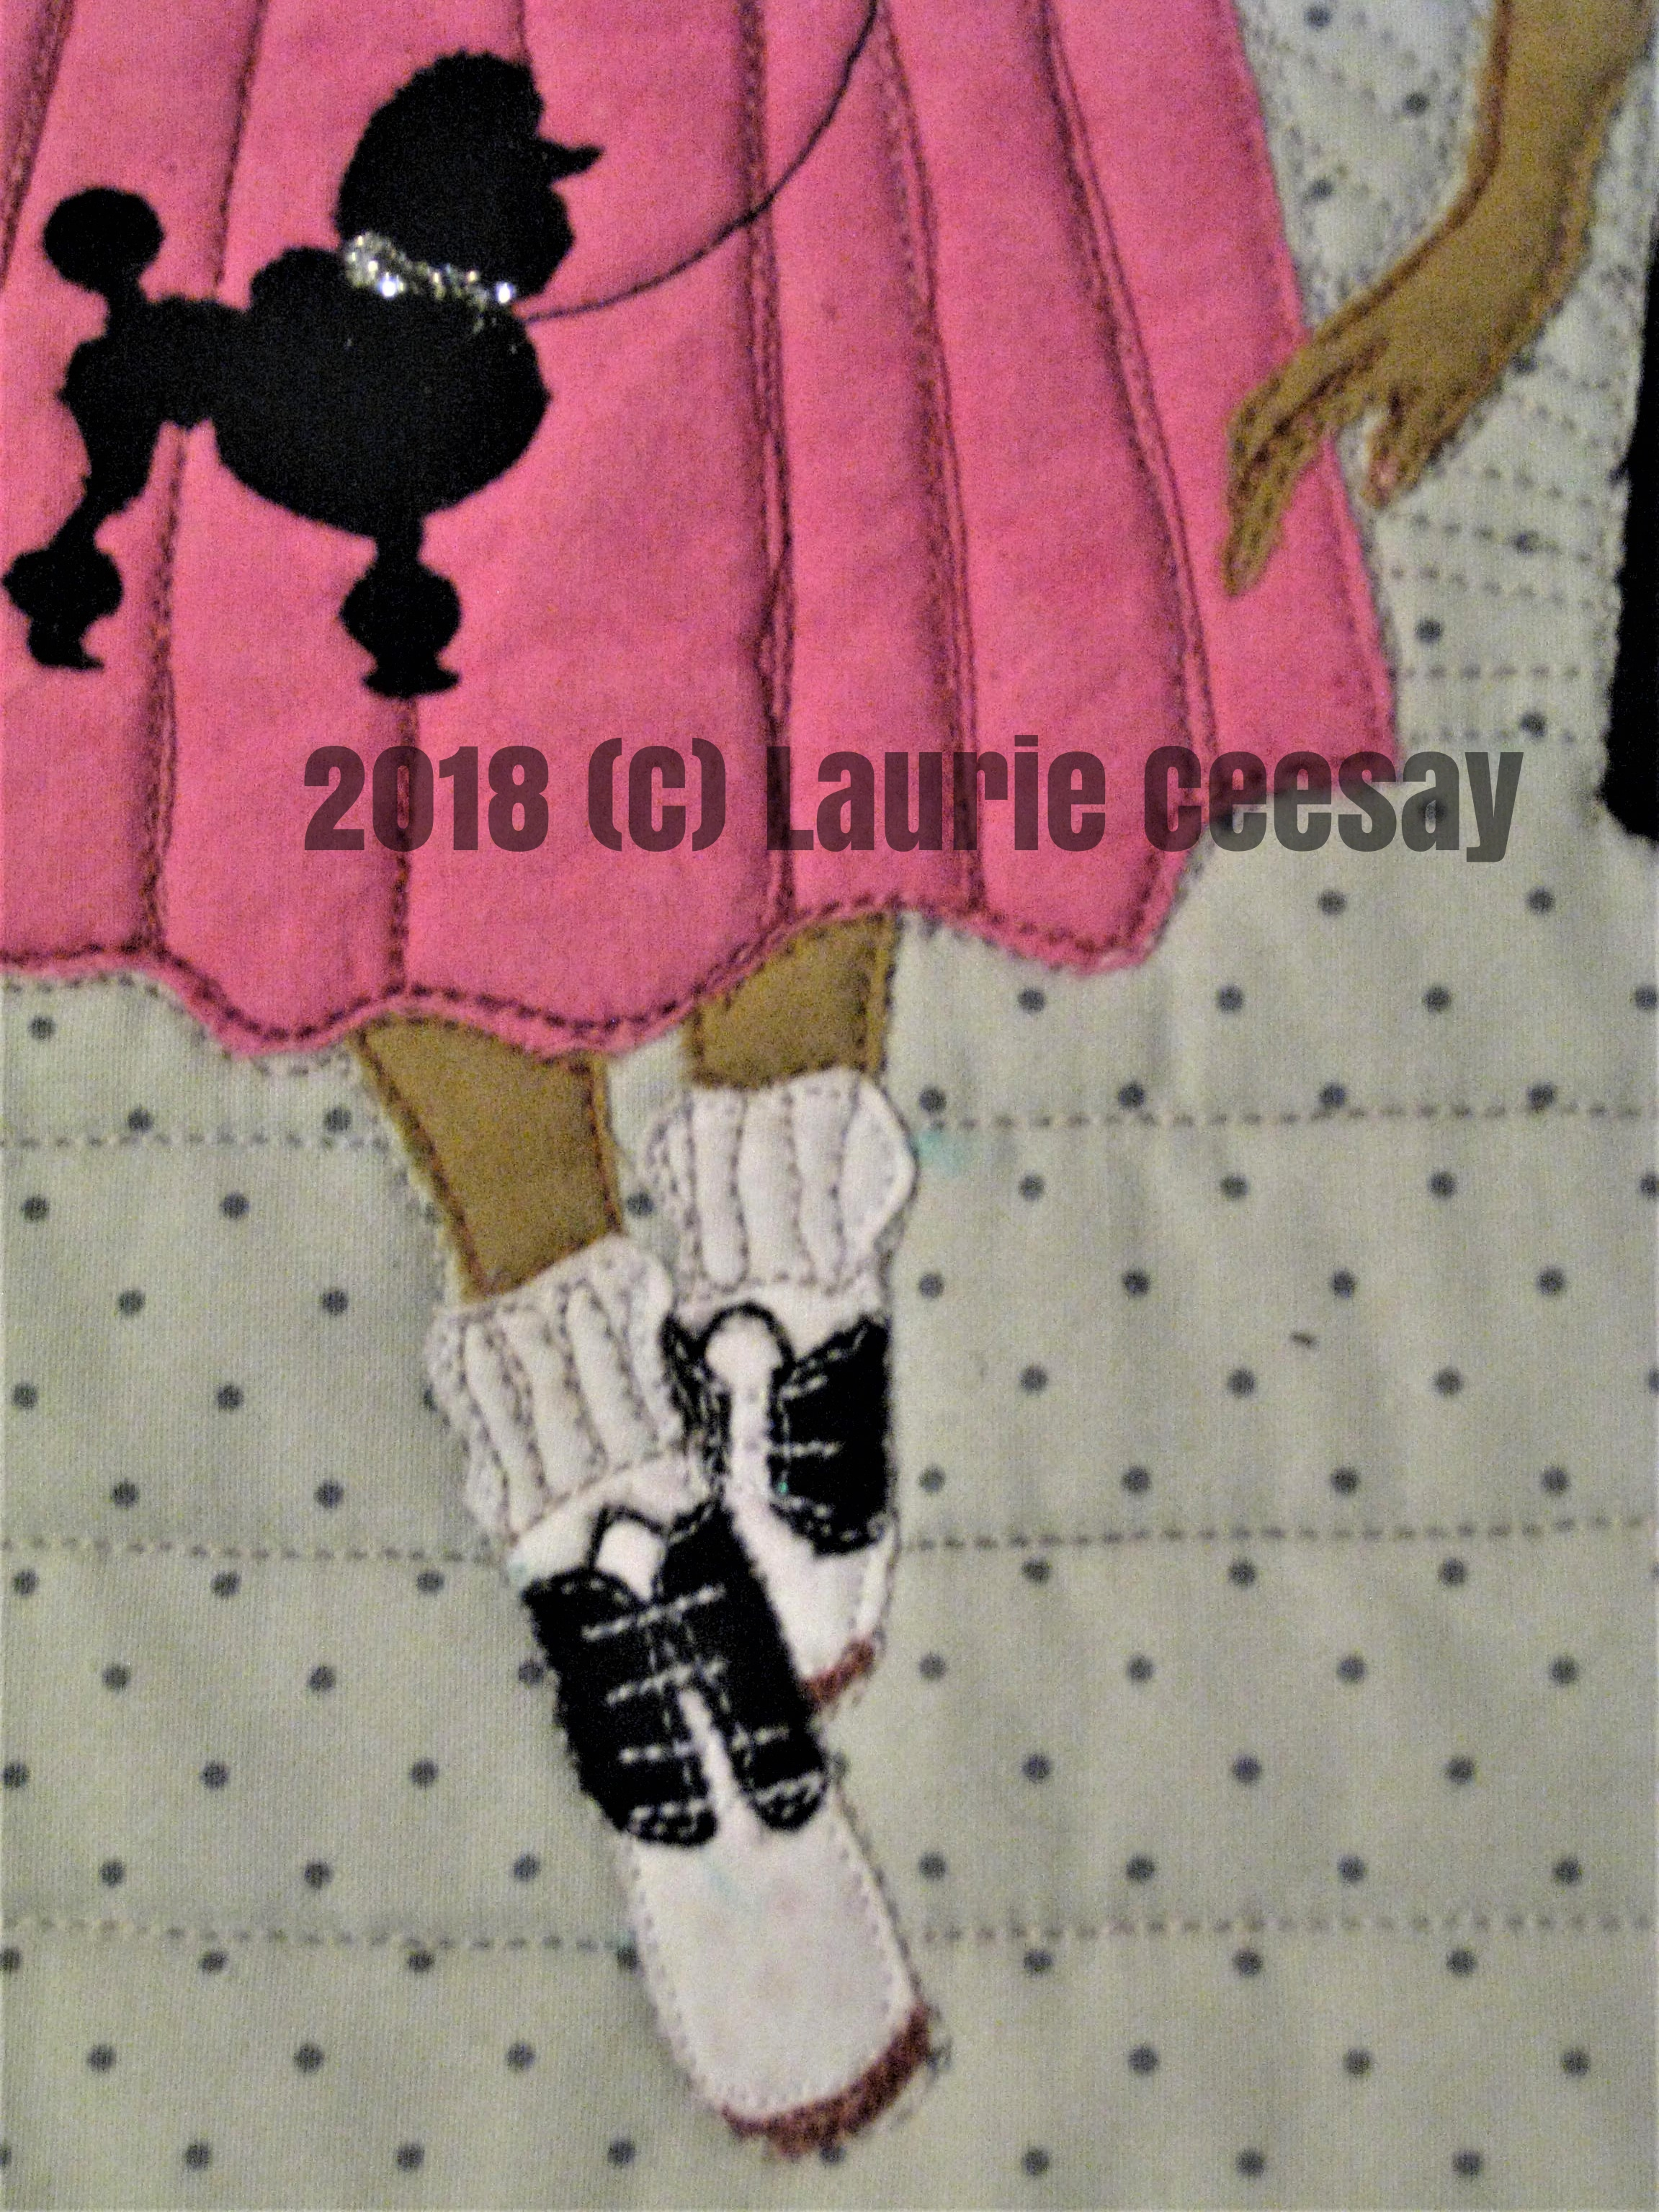 "This is the close-up of the 1950s paper doll. This doll has lots of embellishment including the sweater buttons and the poodle collar/lease.  The 1940s paper doll has fishnet stocking with a back seam, victory roll hair, gloves and pearl jewelry.  The 1950s paper doll has a poodle skirt, bobby socks and saddle shoes, a ponytail and neck scarf.  The 1960s paper doll has Twiggy inspired shift dress and hair, ;ight pink frosty lips and white go-go boots.  The 1970s paper doll has a halter top, wide bell bottom pants and  platform cork bottom sandals.  And the 1980s paper doll has a side ponytail with a scrunchie, leggings and leg warmers and an off the shoulder top wide a wide belt a la Flash Dance!  I had a great time making this mini quilt. I probably should get out my seam ripper to remove the personalized ""K"" on the 1950s sweater."